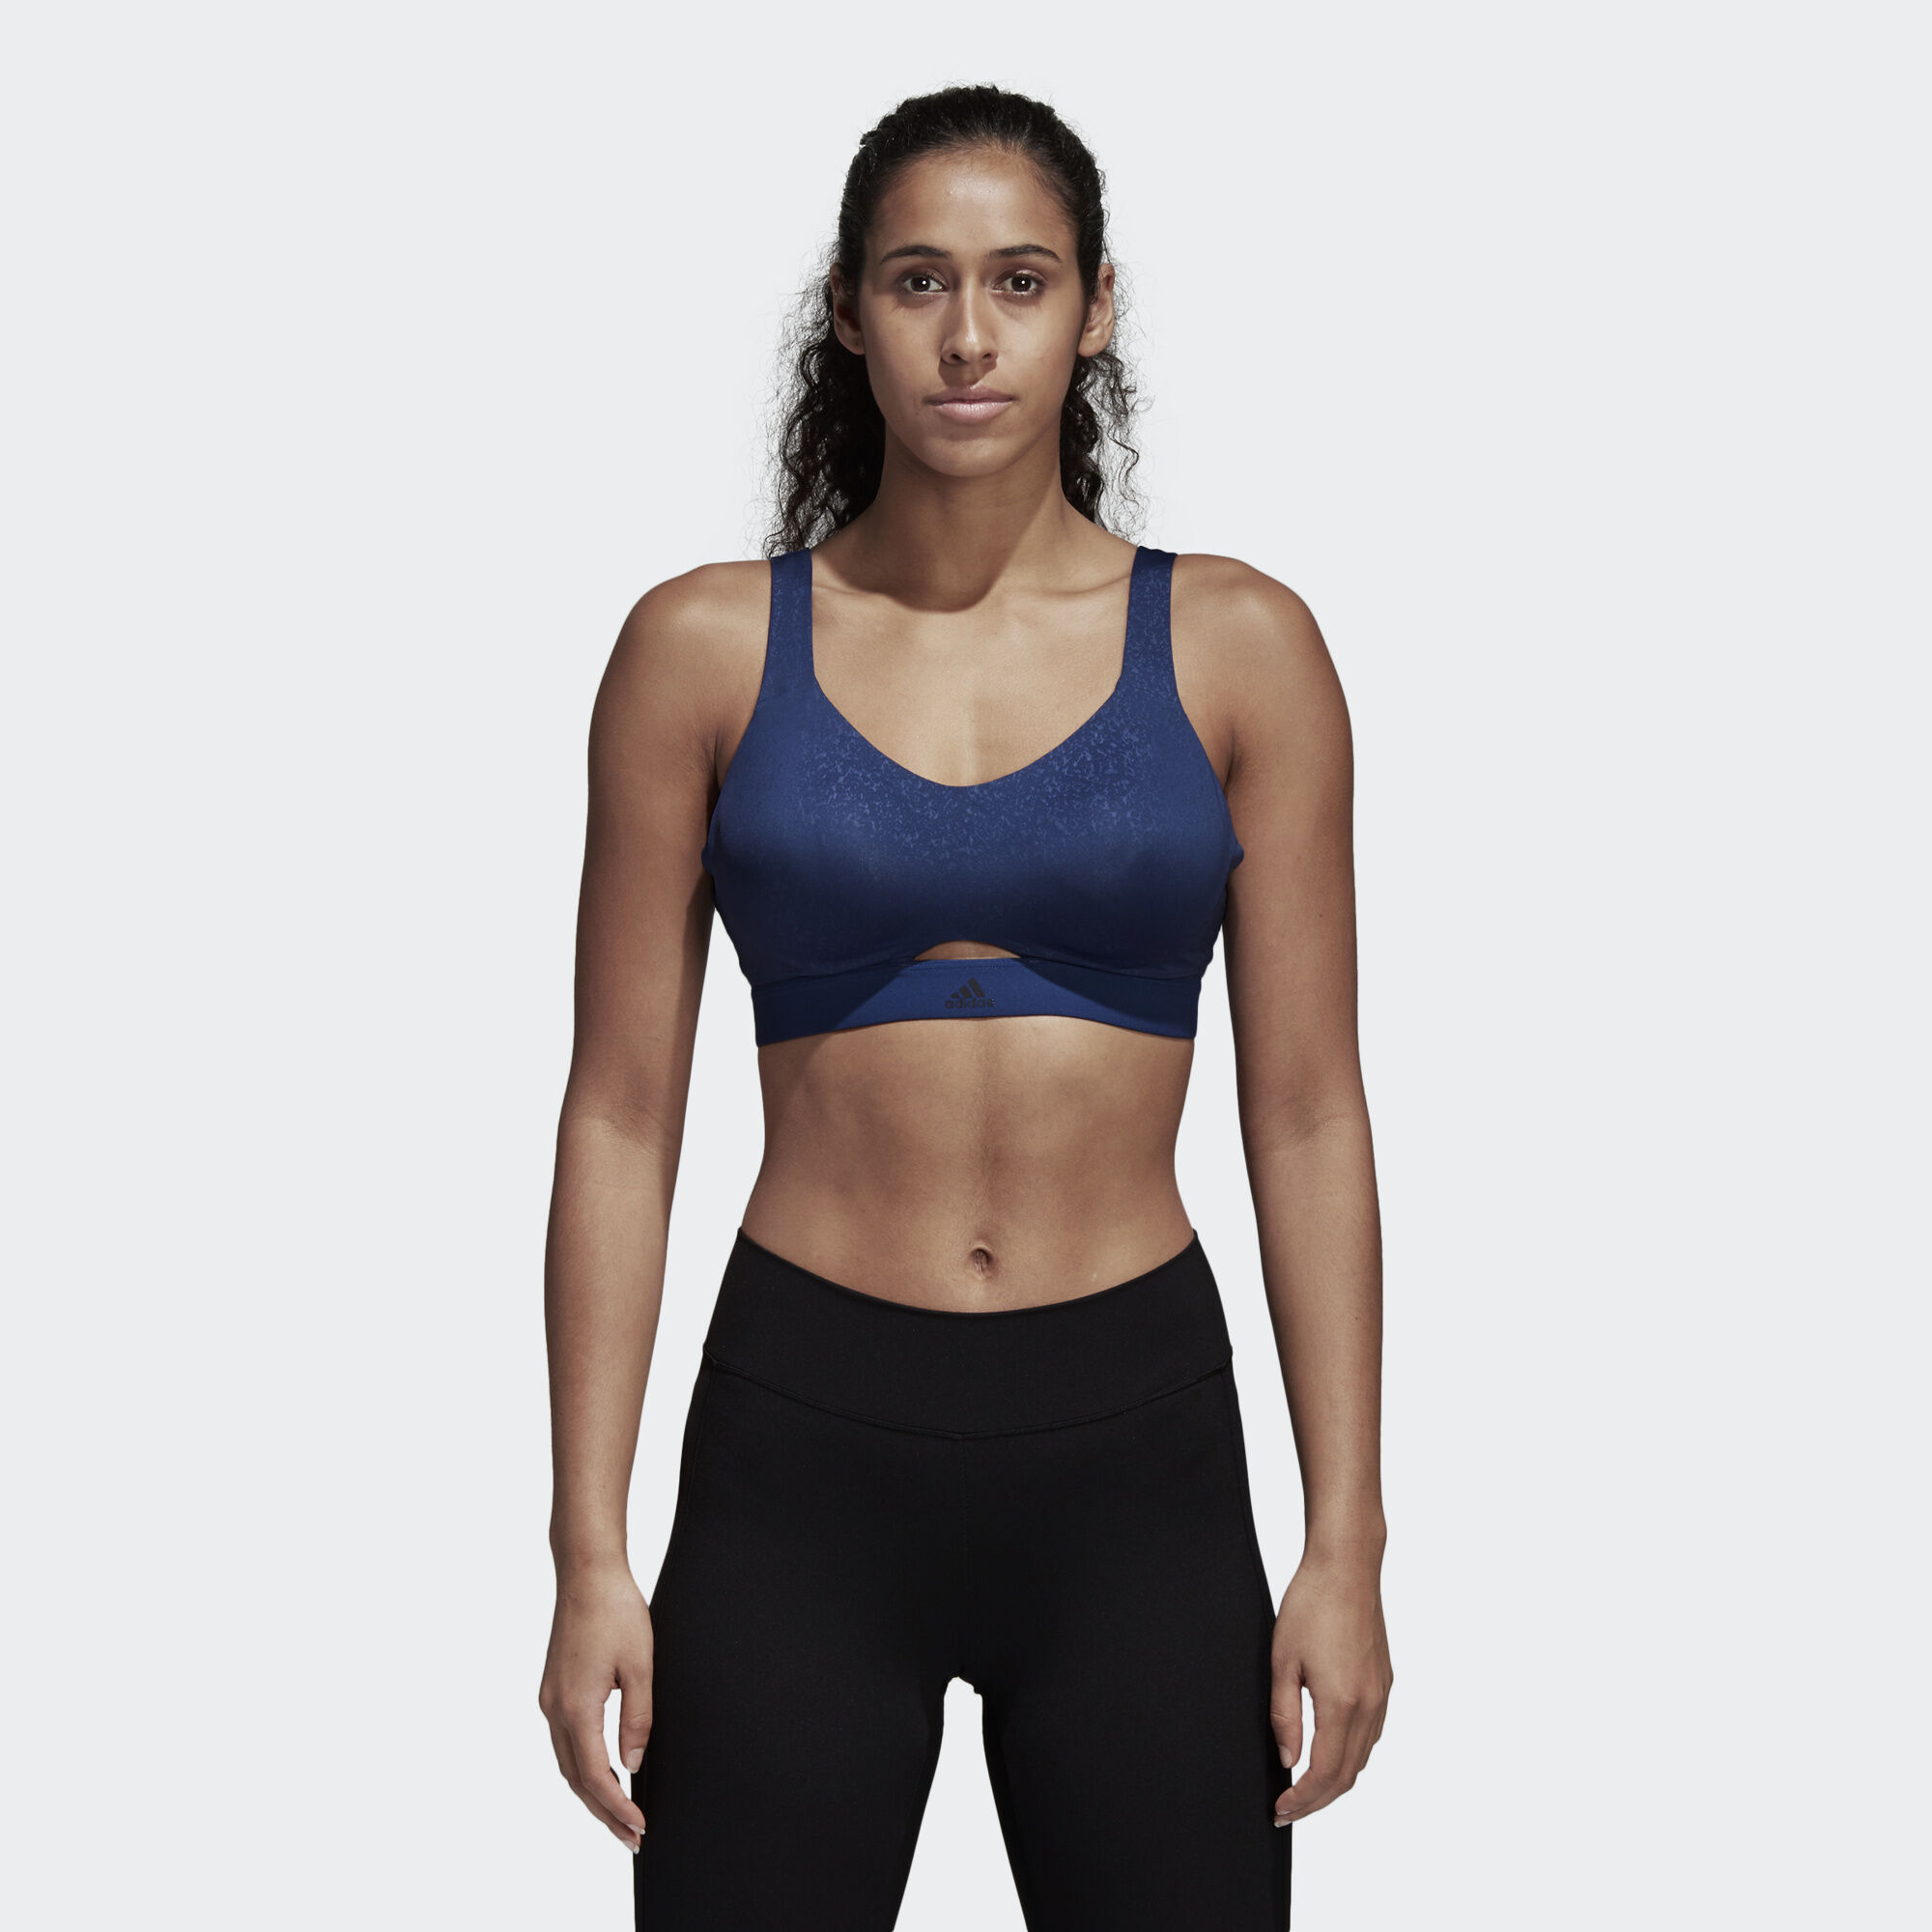 Outlet Where To Buy High Support Bra In Blue - Noble indigo adidas Outlet Locations For Sale Reliable For Sale 9a9Jk